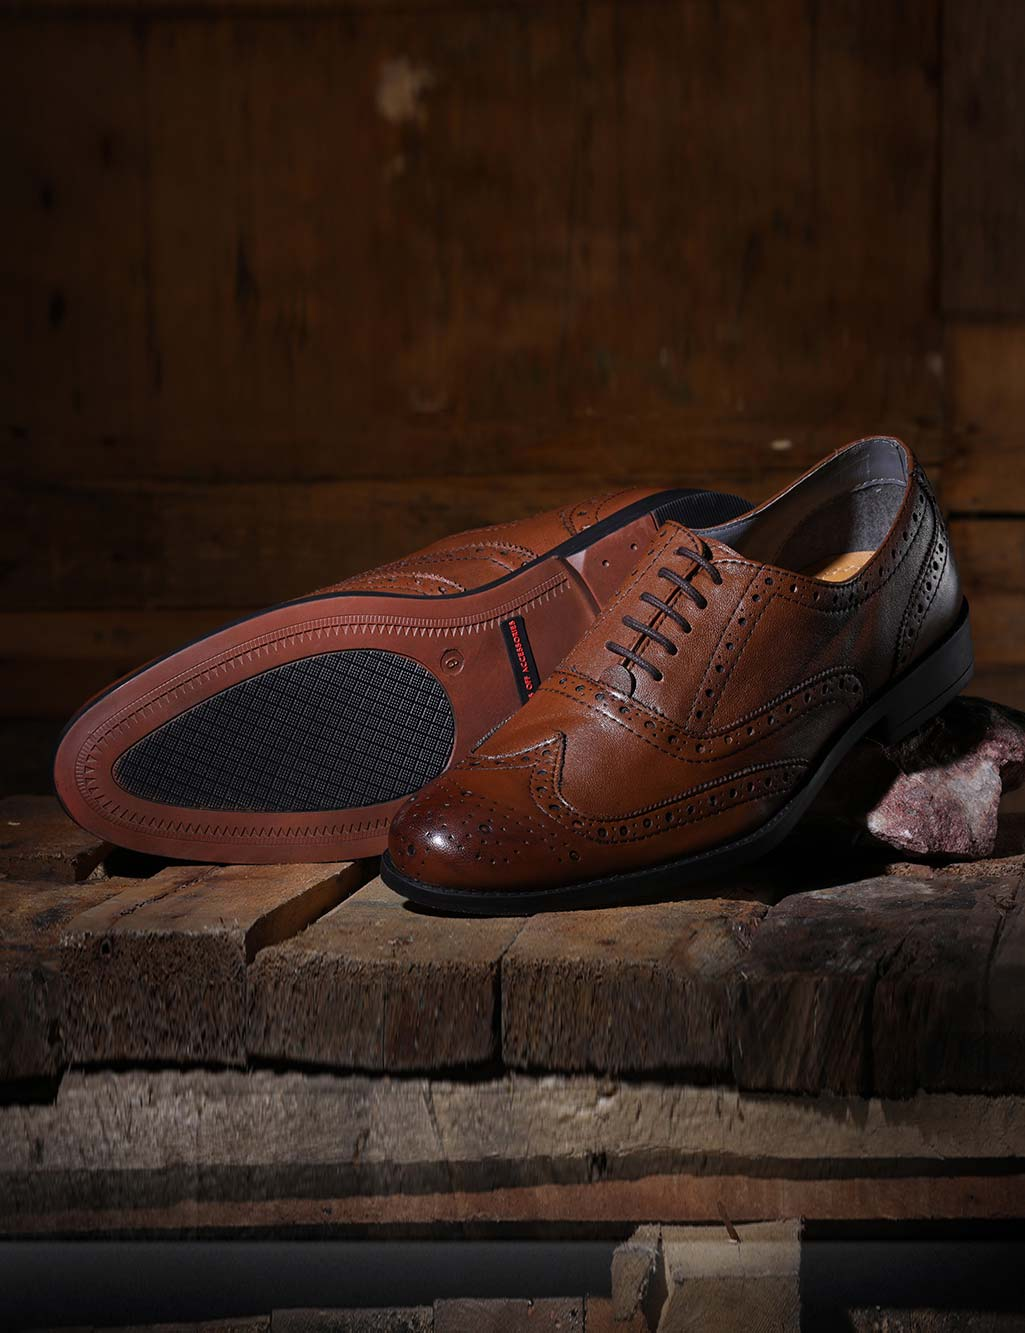 03dfd4a0de951 Genuine Leather Brogue Shoes by Hats Off Accessories - Buy Online at Best  Prices | Ezmall.com